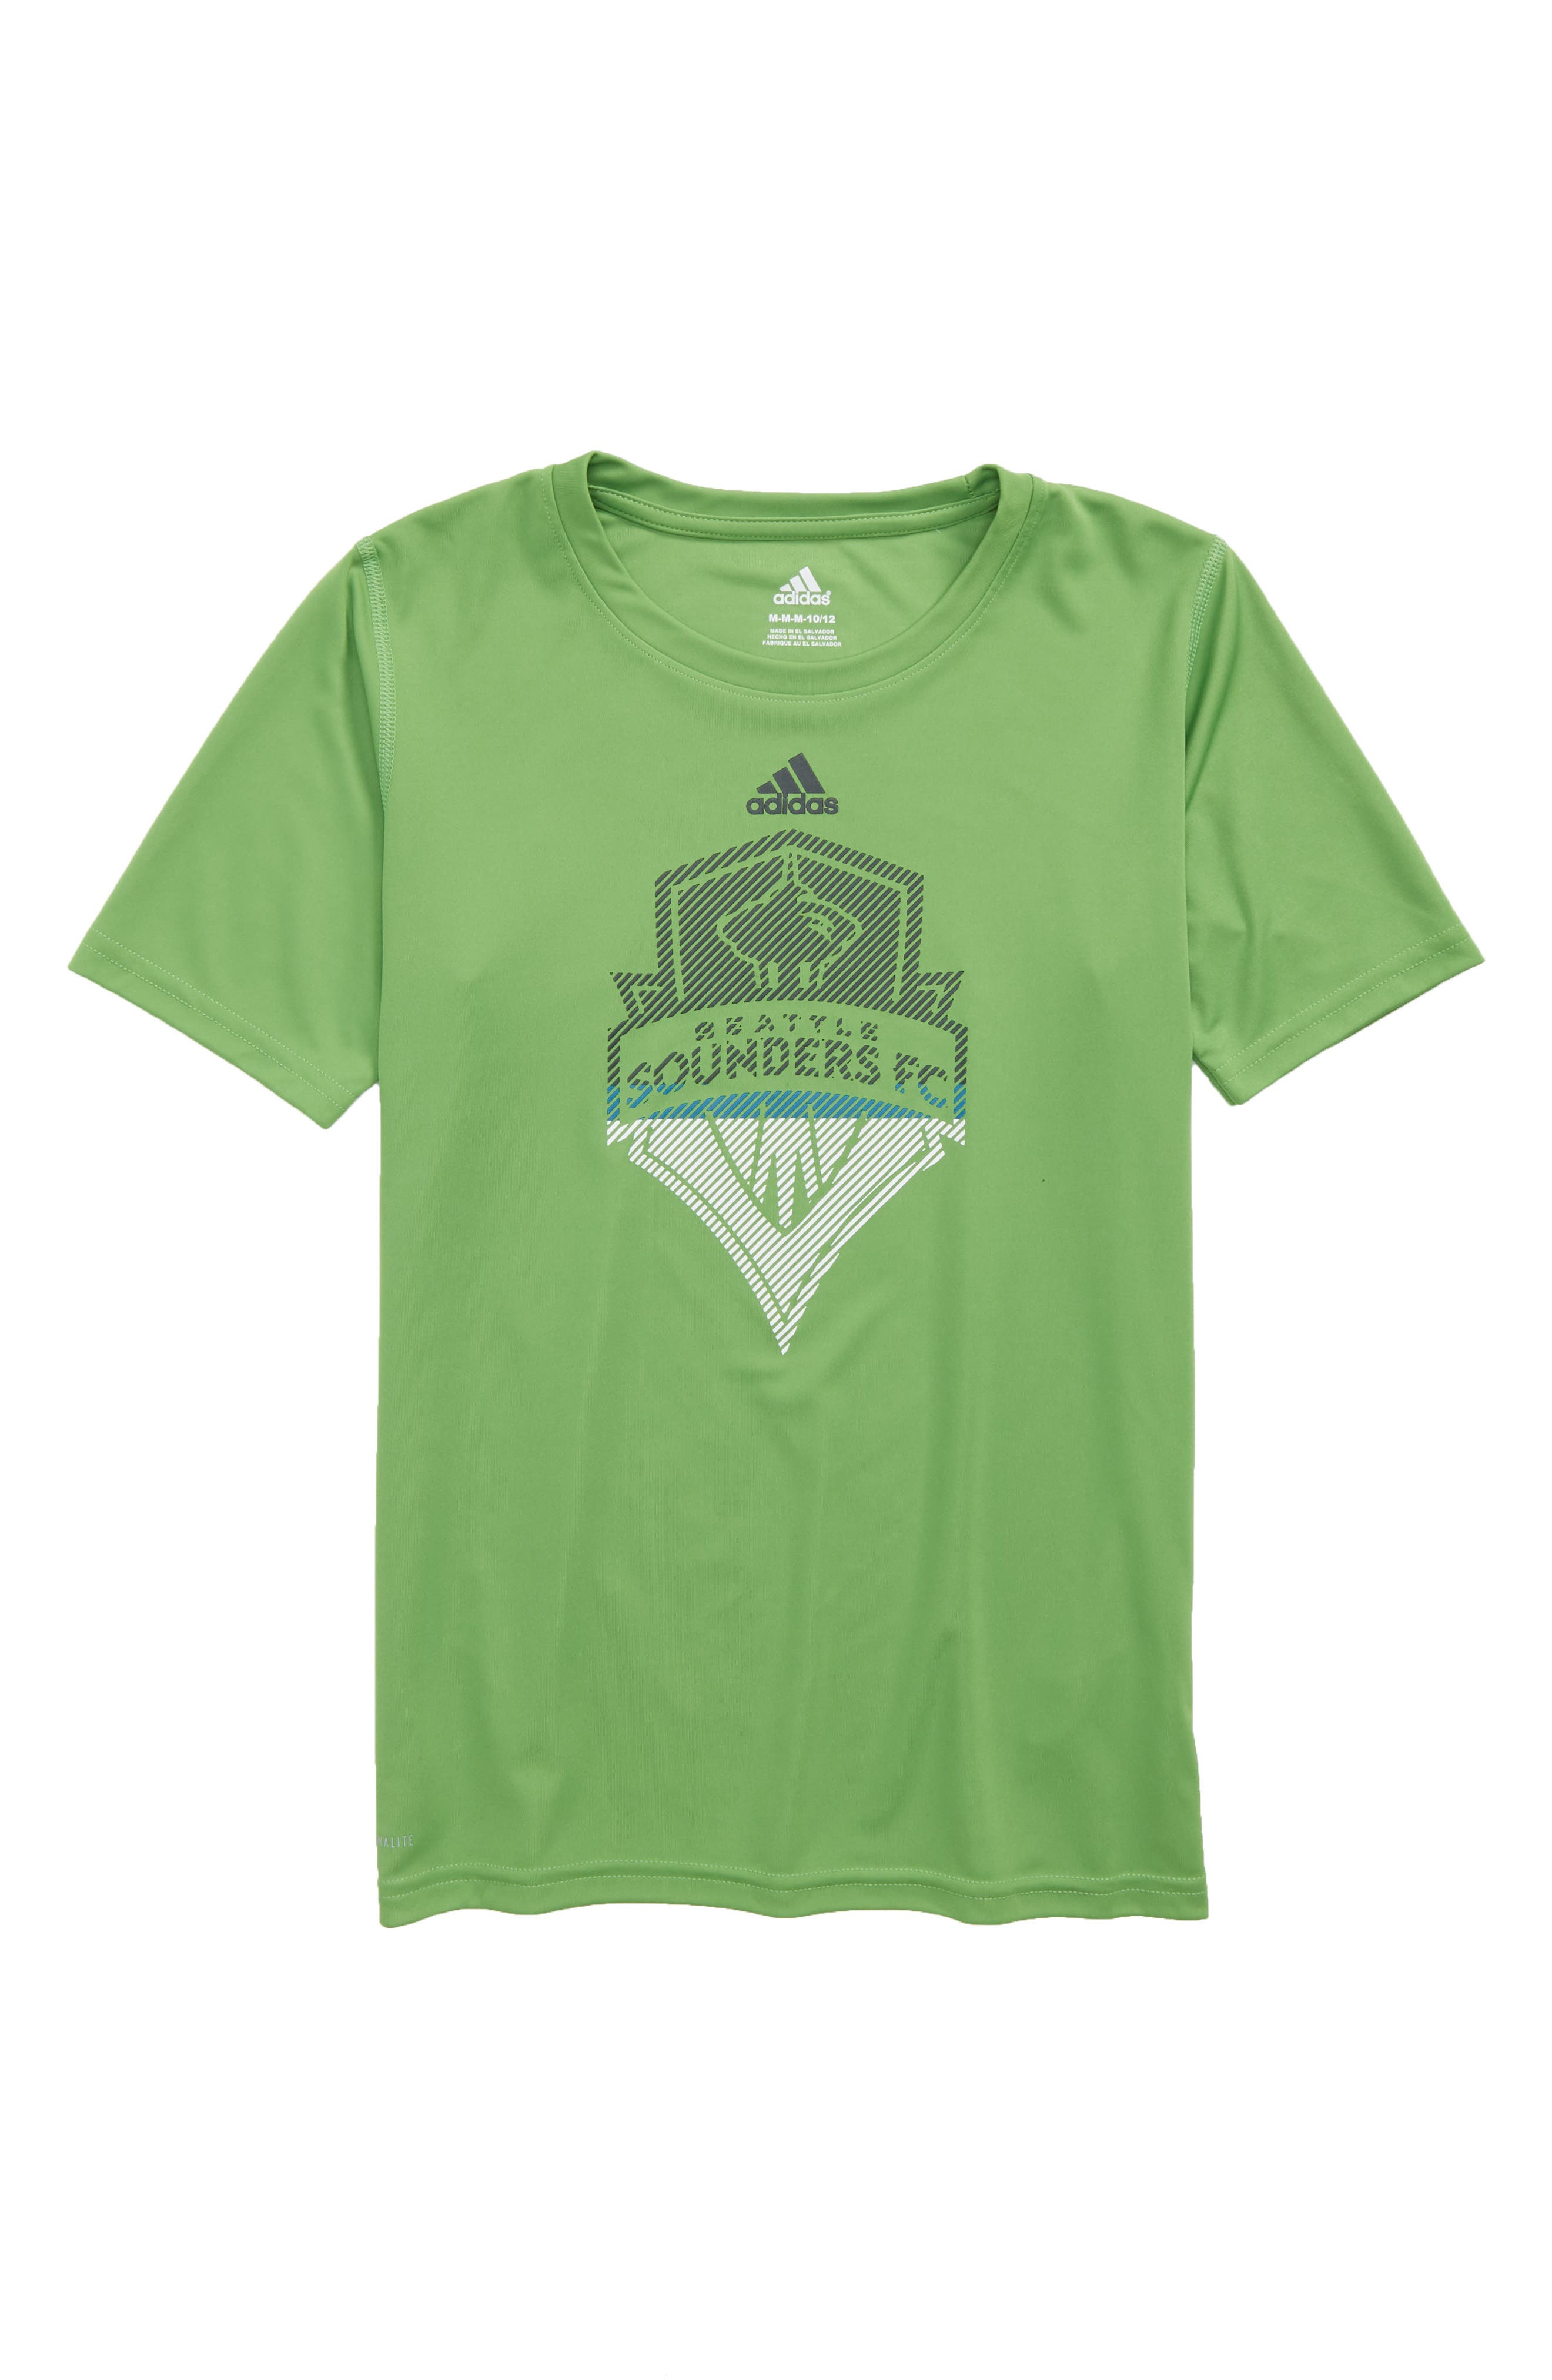 MLS Seattle Sounders FC Climalite<sup>®</sup> T-Shirt,                             Main thumbnail 1, color,                             300